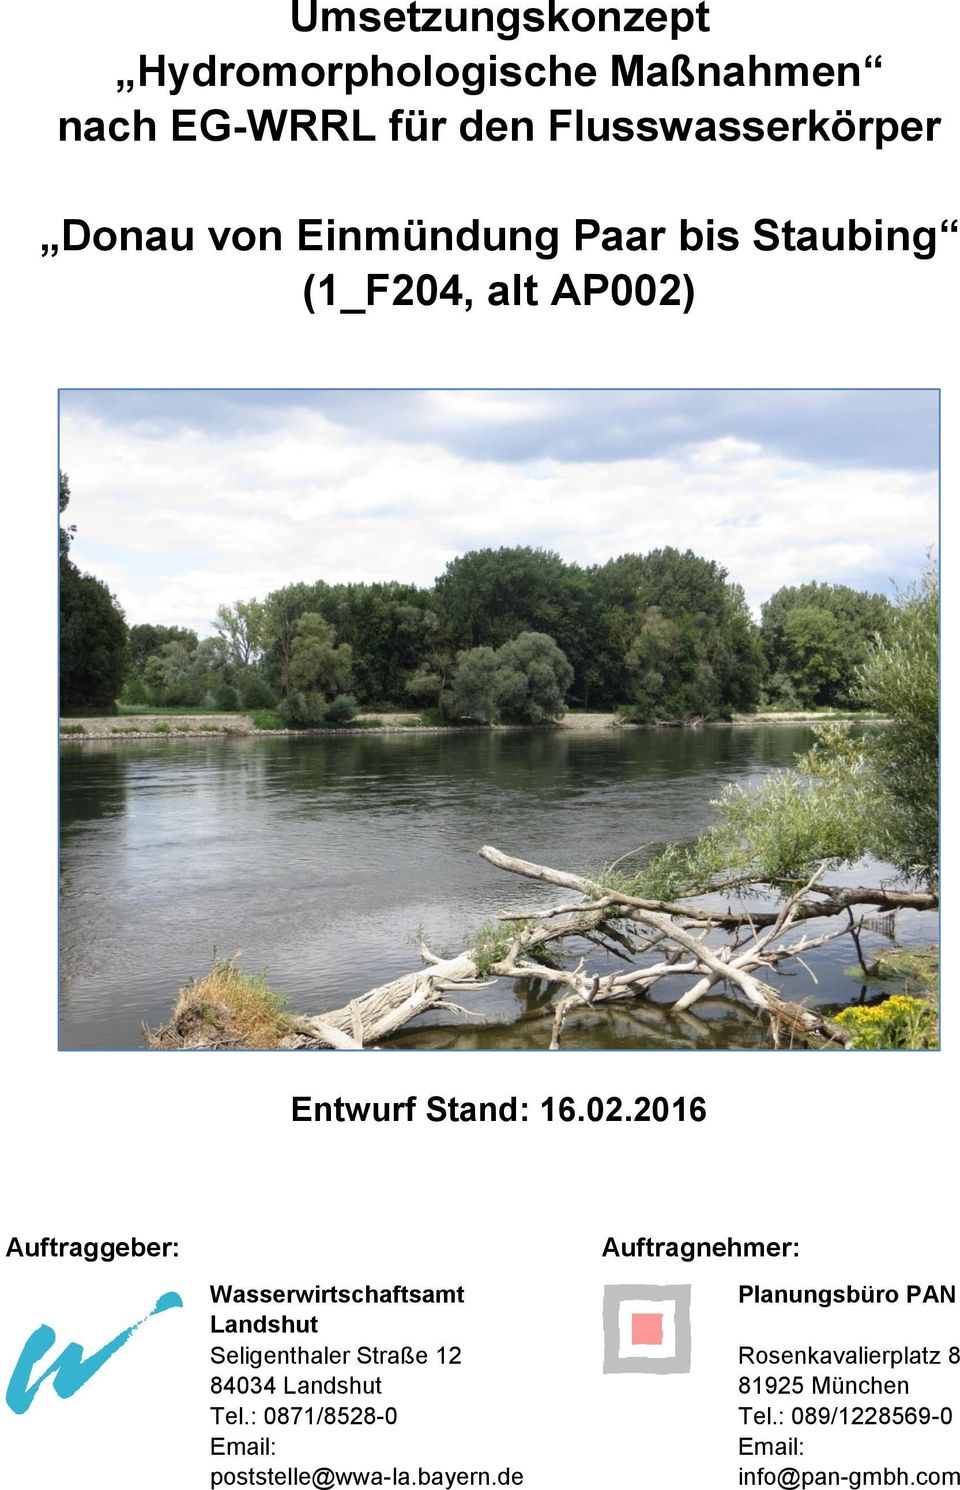 Entwurf Stand: 16.02.